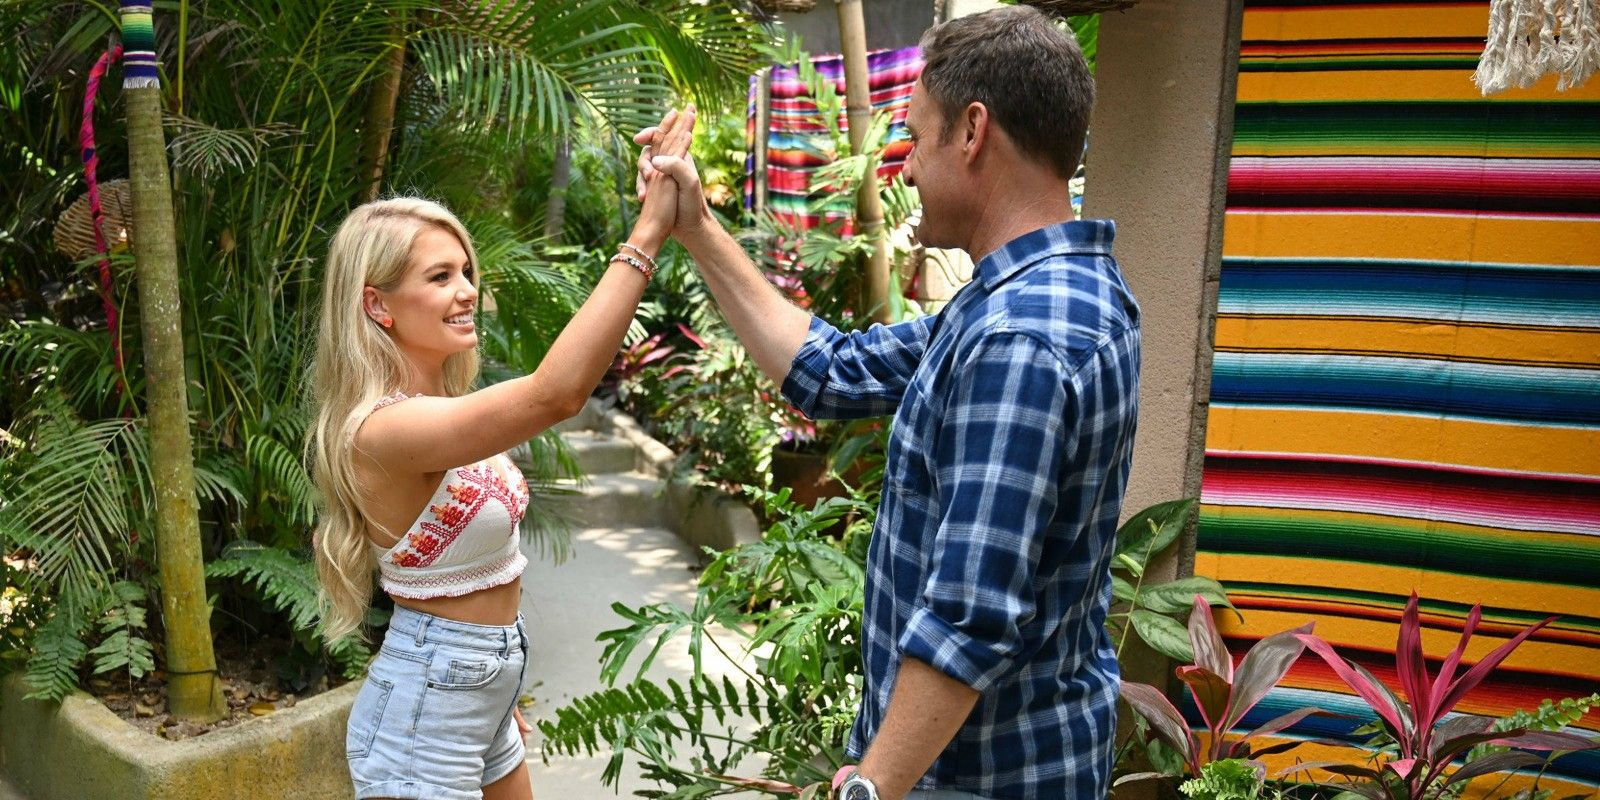 Chris Harrison On Why Bachelor in Paradise Let Demi & Kristian Stay